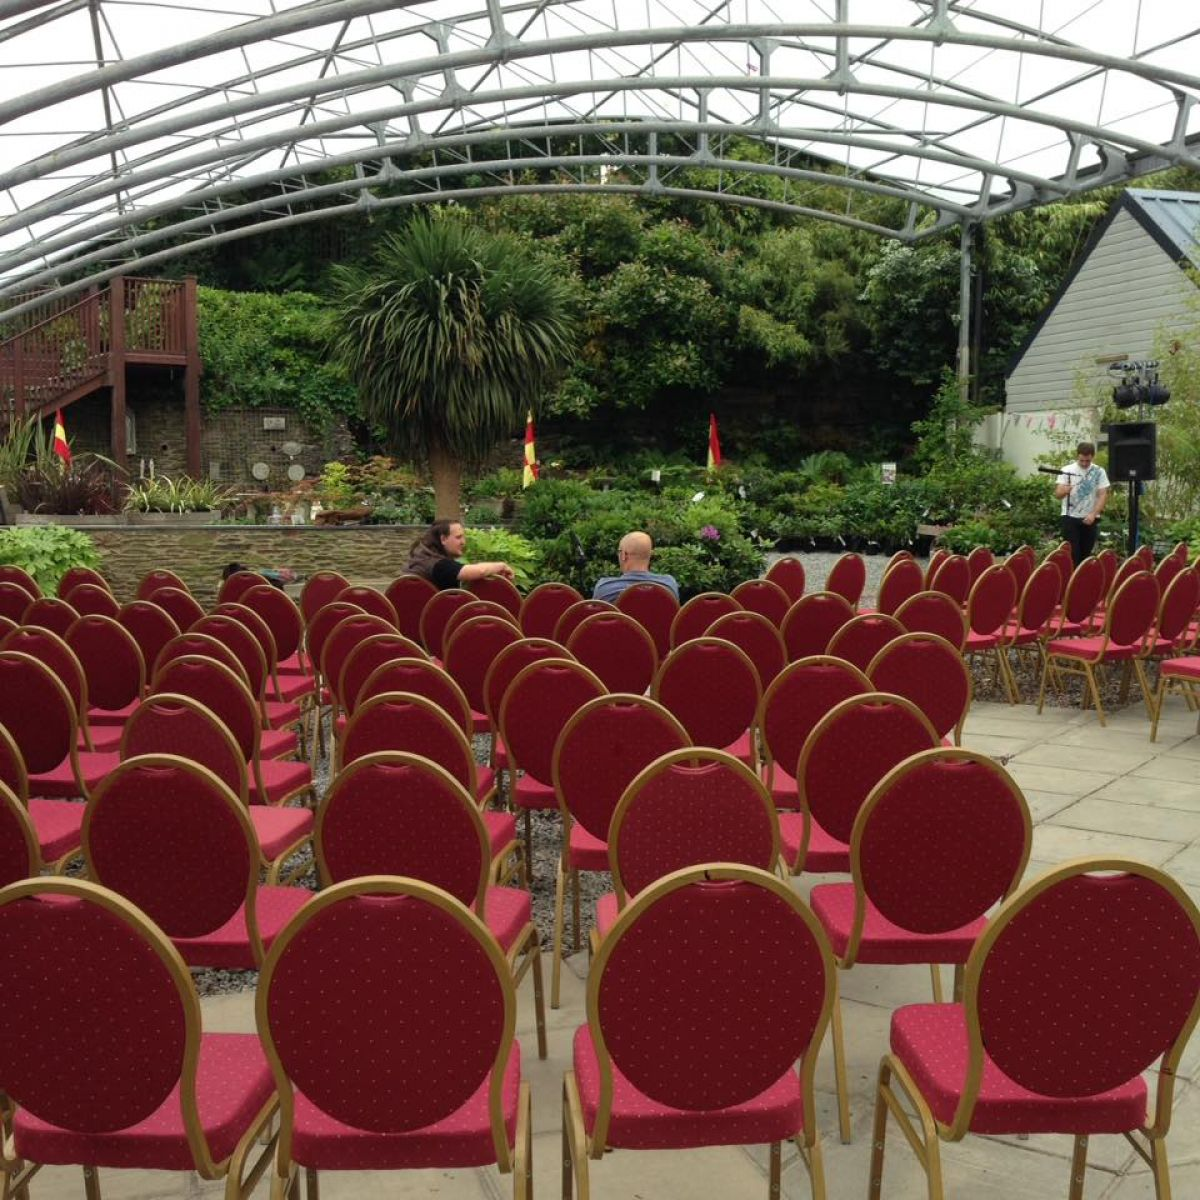 Theatre at Avon Mill Garden Centre